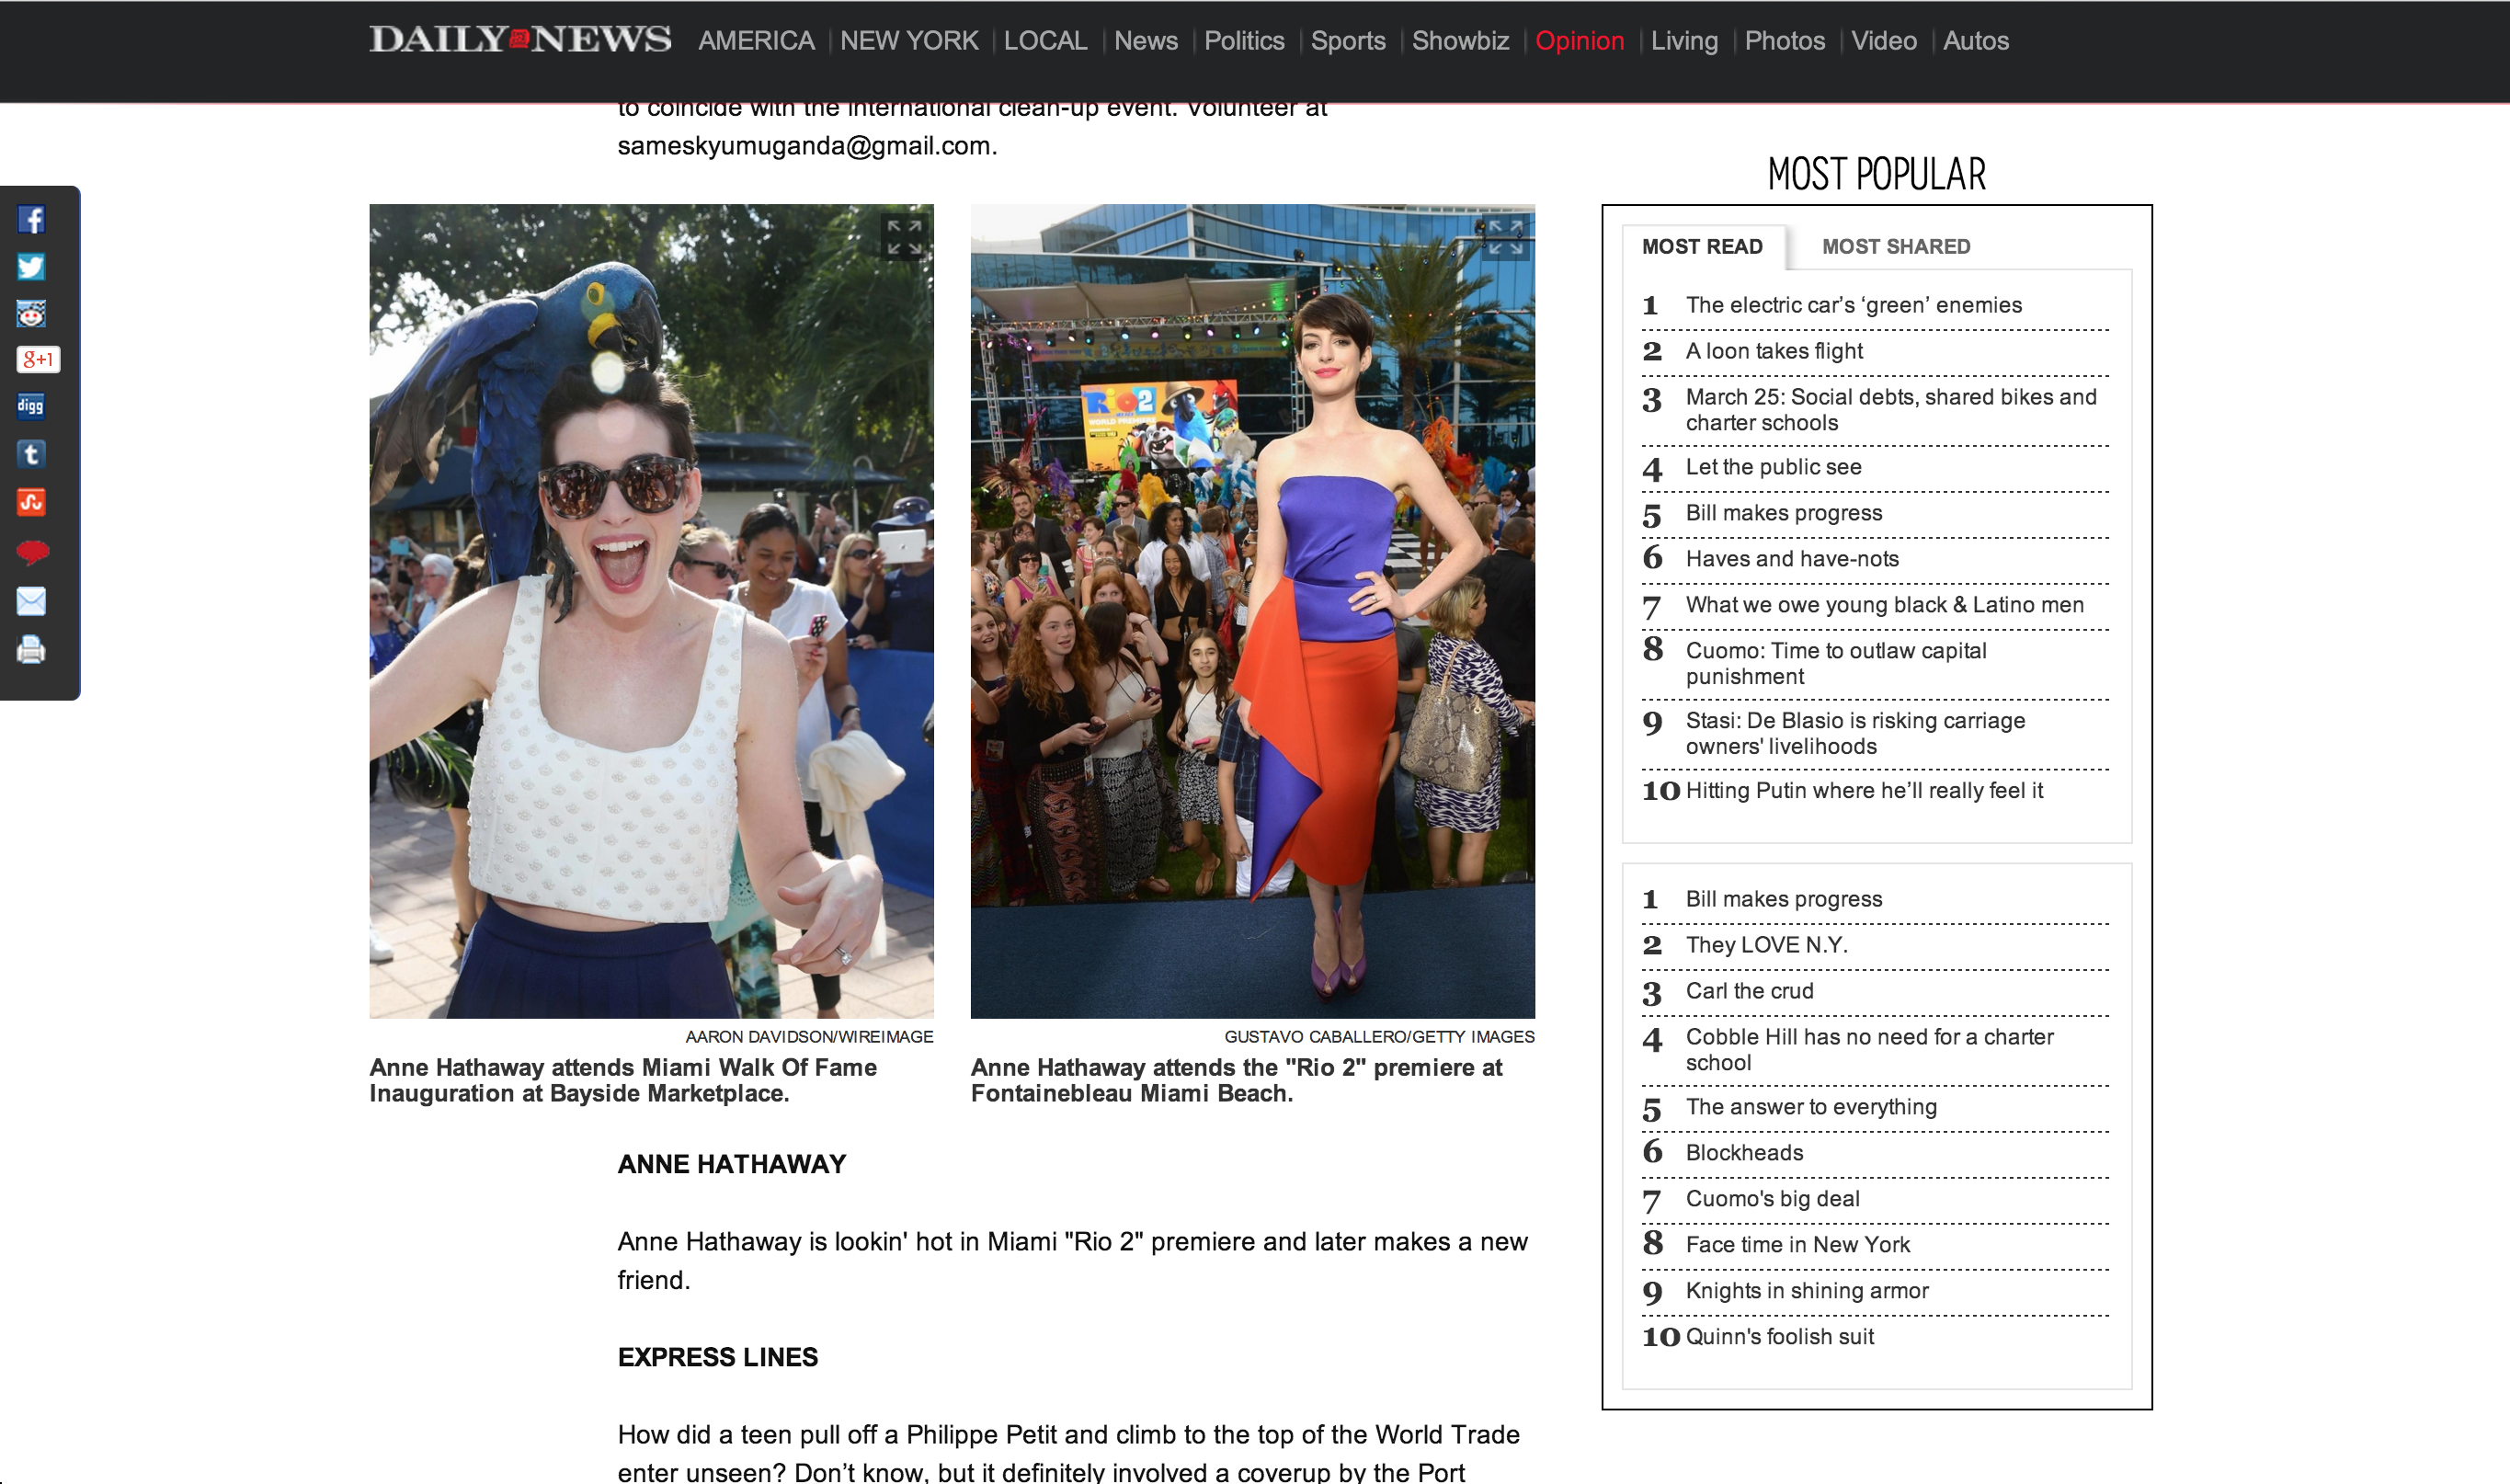 Anne hathaway New York Daily News